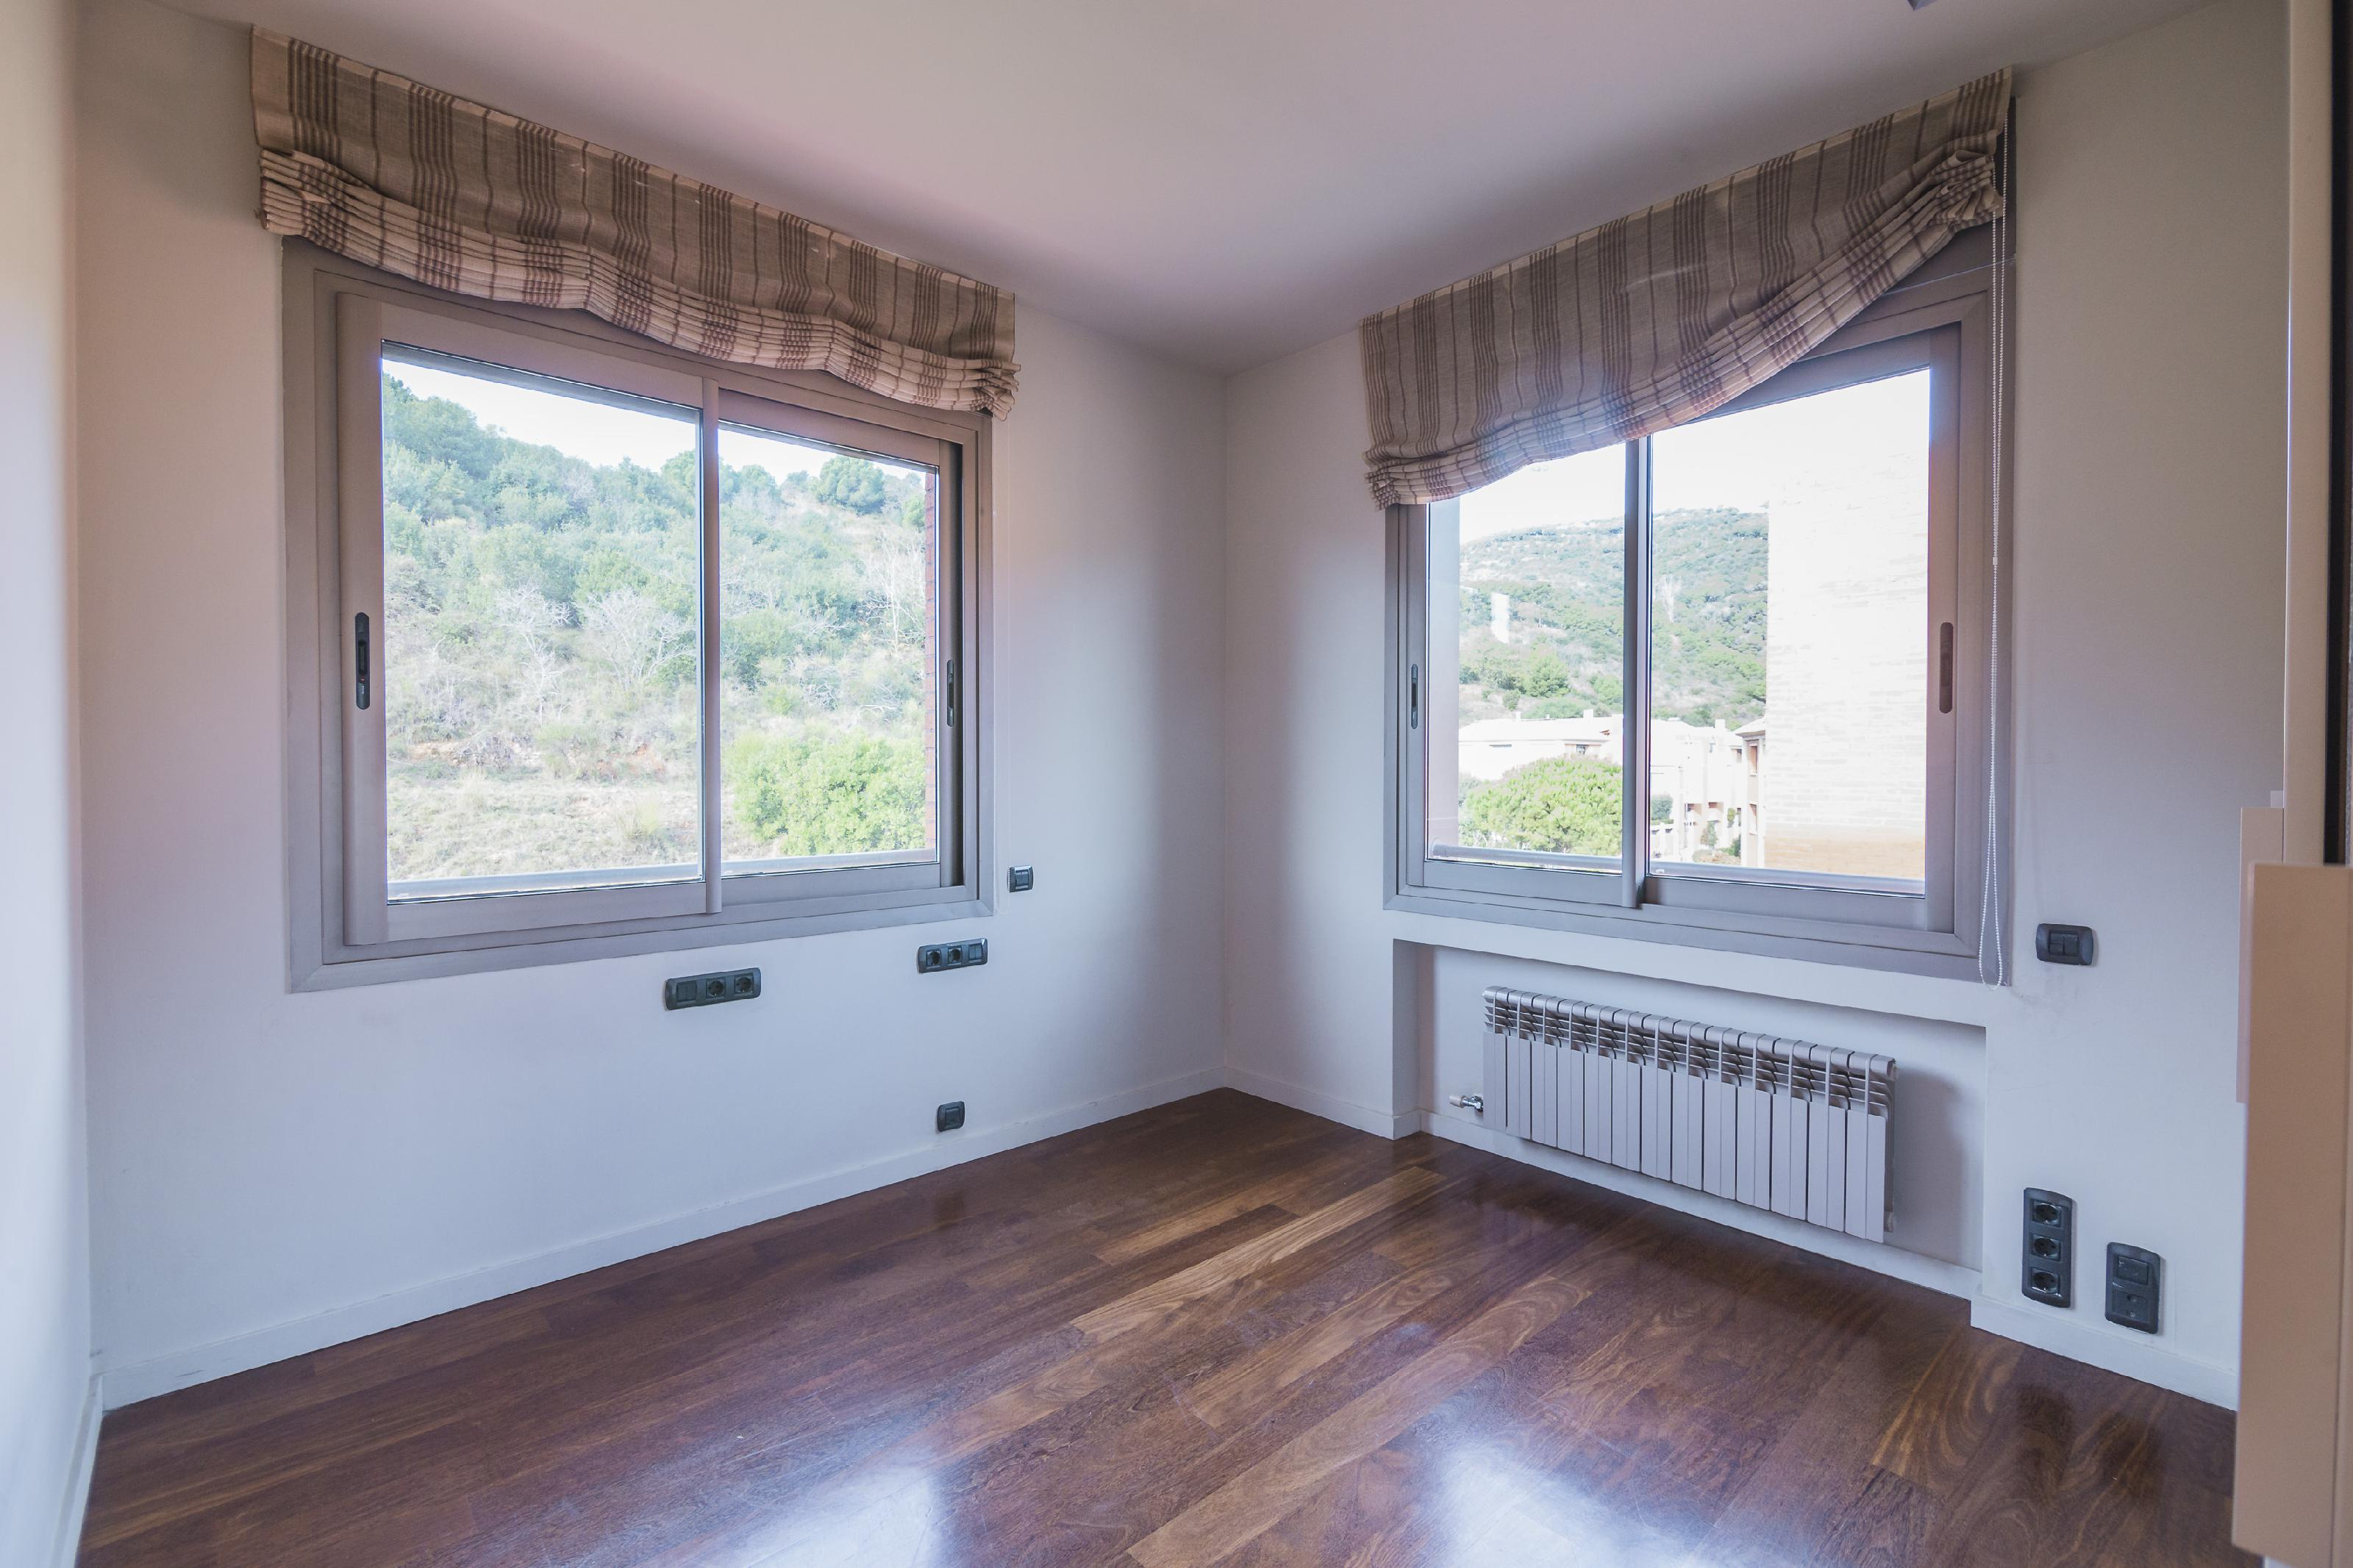 244234 Semi-detached house for sale in Sarrià-Sant Gervasi, St. Gervasi-Bonanova 21